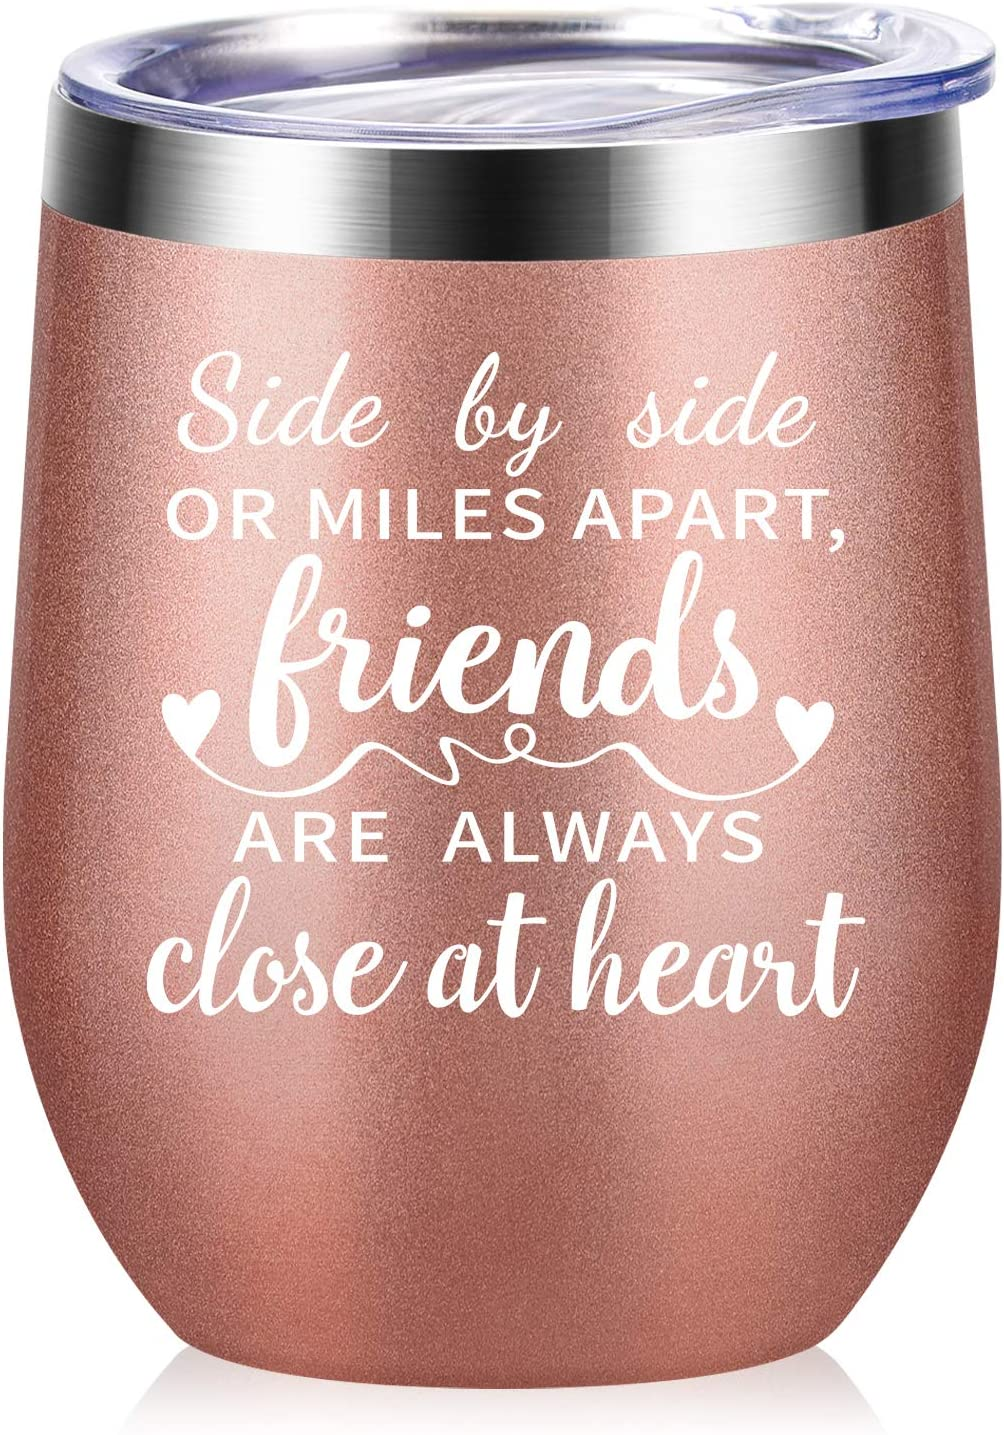 Side By Side or Miles Apart, Friends Are Always Close at Heart - Best Friend Birthday Gifts for Women - Long Distance Friendship Gifts for Soul Sisters, BFF, Besties - 12 oz Wine Tumbler - Rose Gold